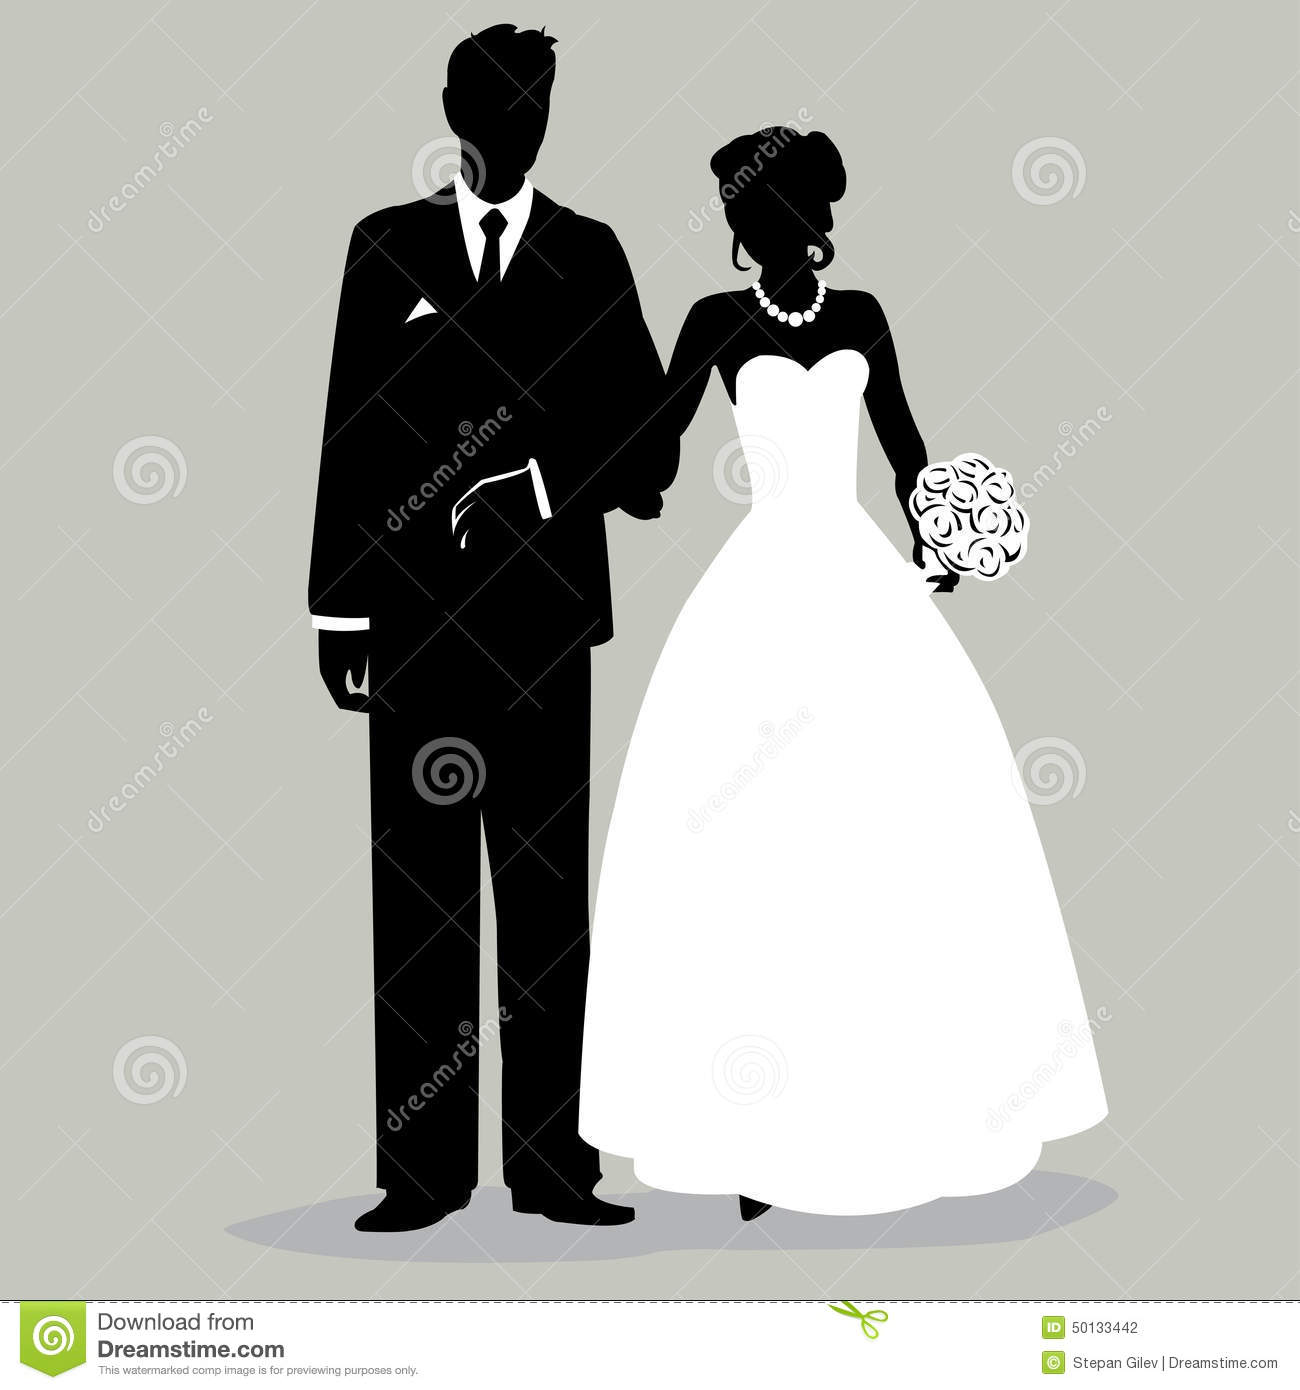 Wedding Invitation Clip Art is best invitations layout